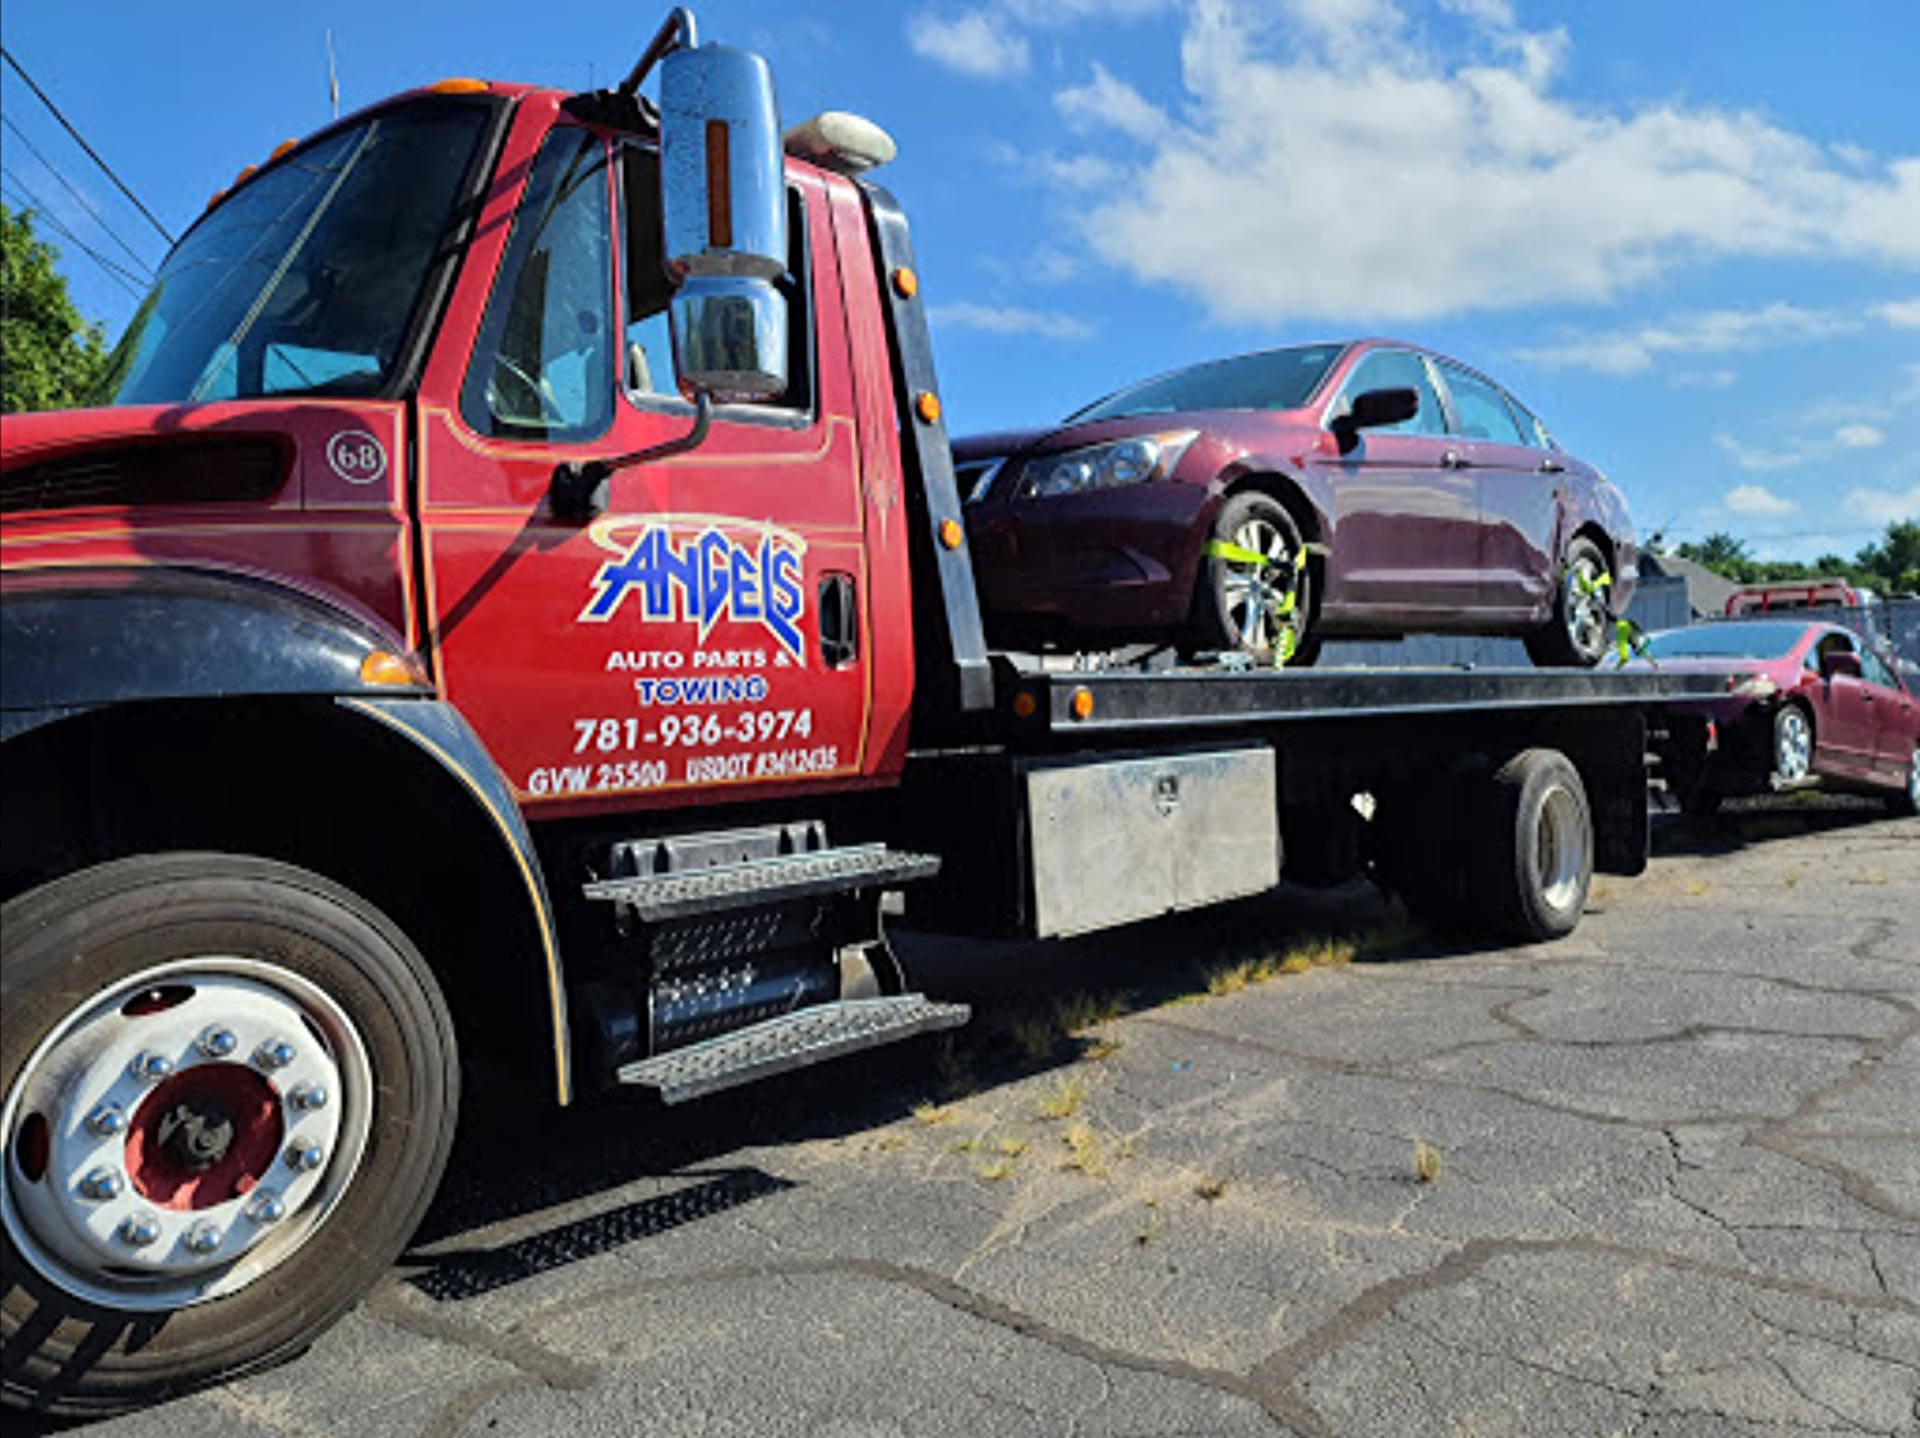 Our junk car removal tow trucks travel around Massachusetts and Rhode Island offering free towing for scrap vehicle pickup